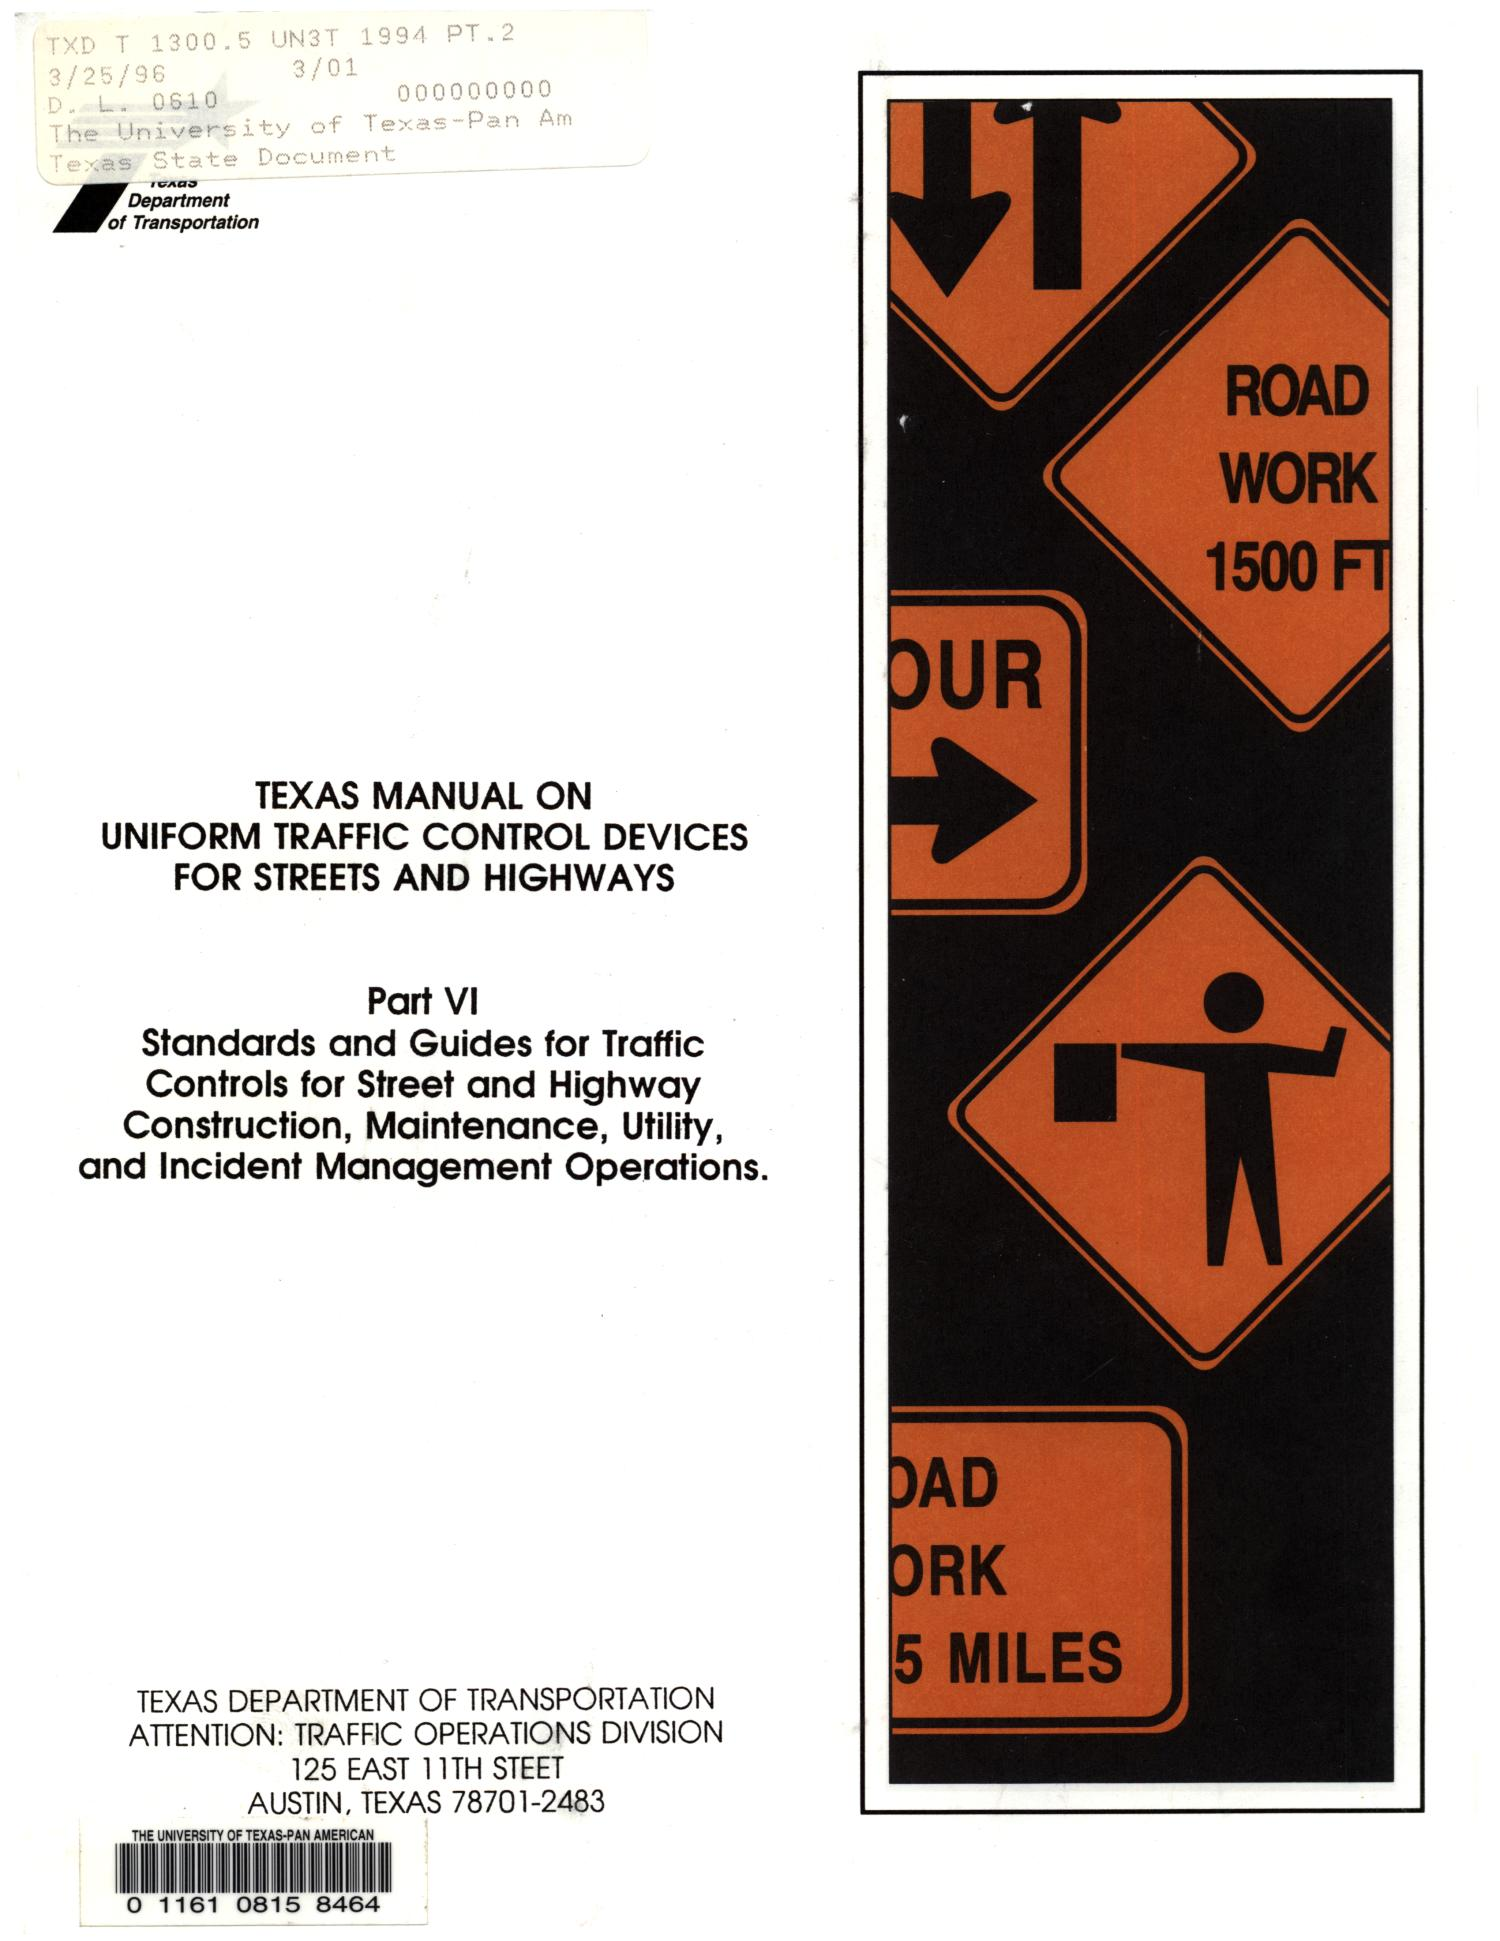 Texas Manual on Uniform Traffic Control Devices for Streets and Highways,  Part 6 - The Portal to Texas History